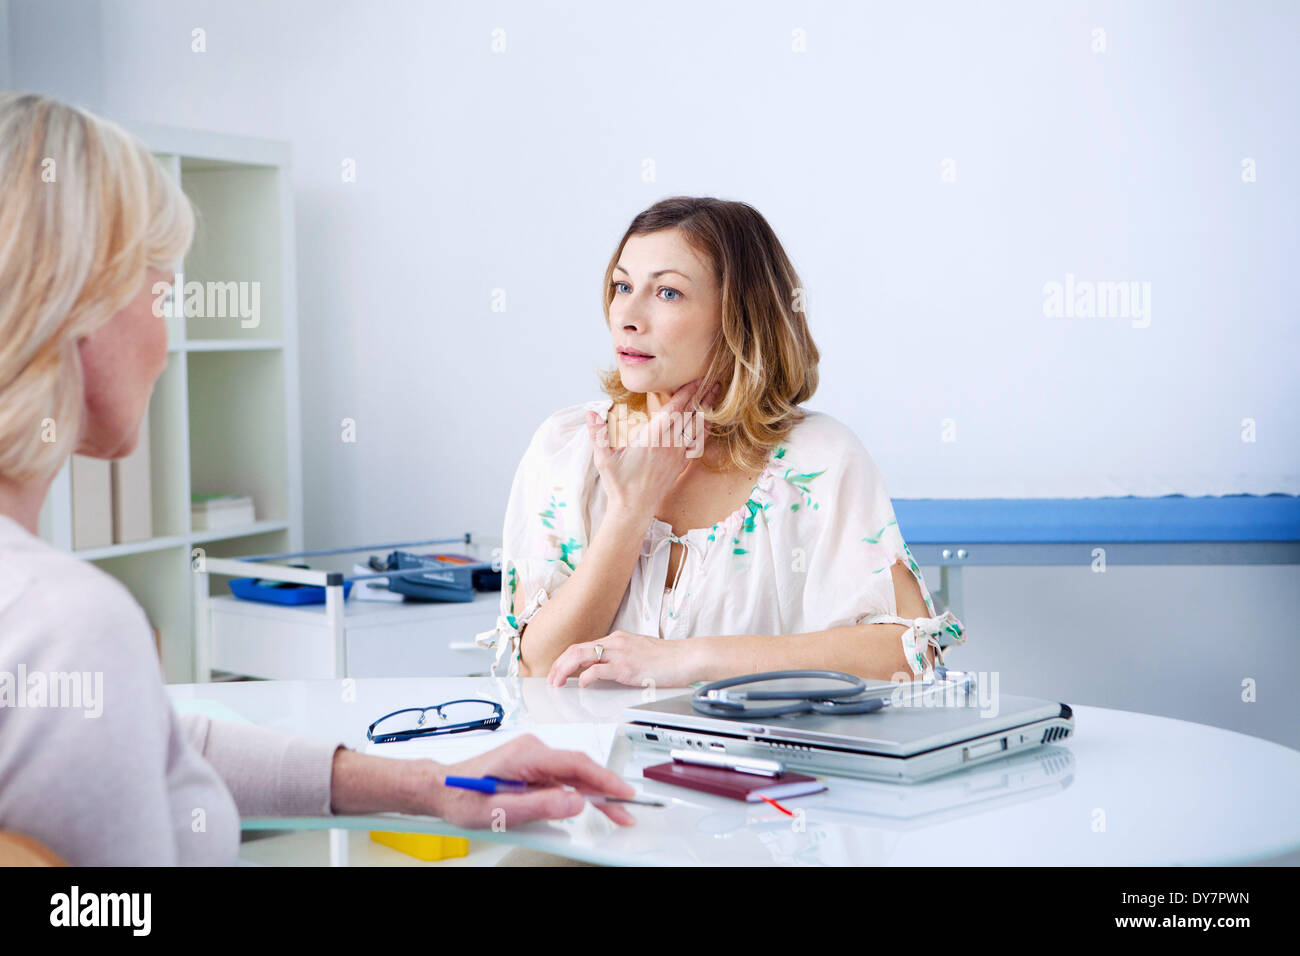 Consultation, woman in pain - Stock Image